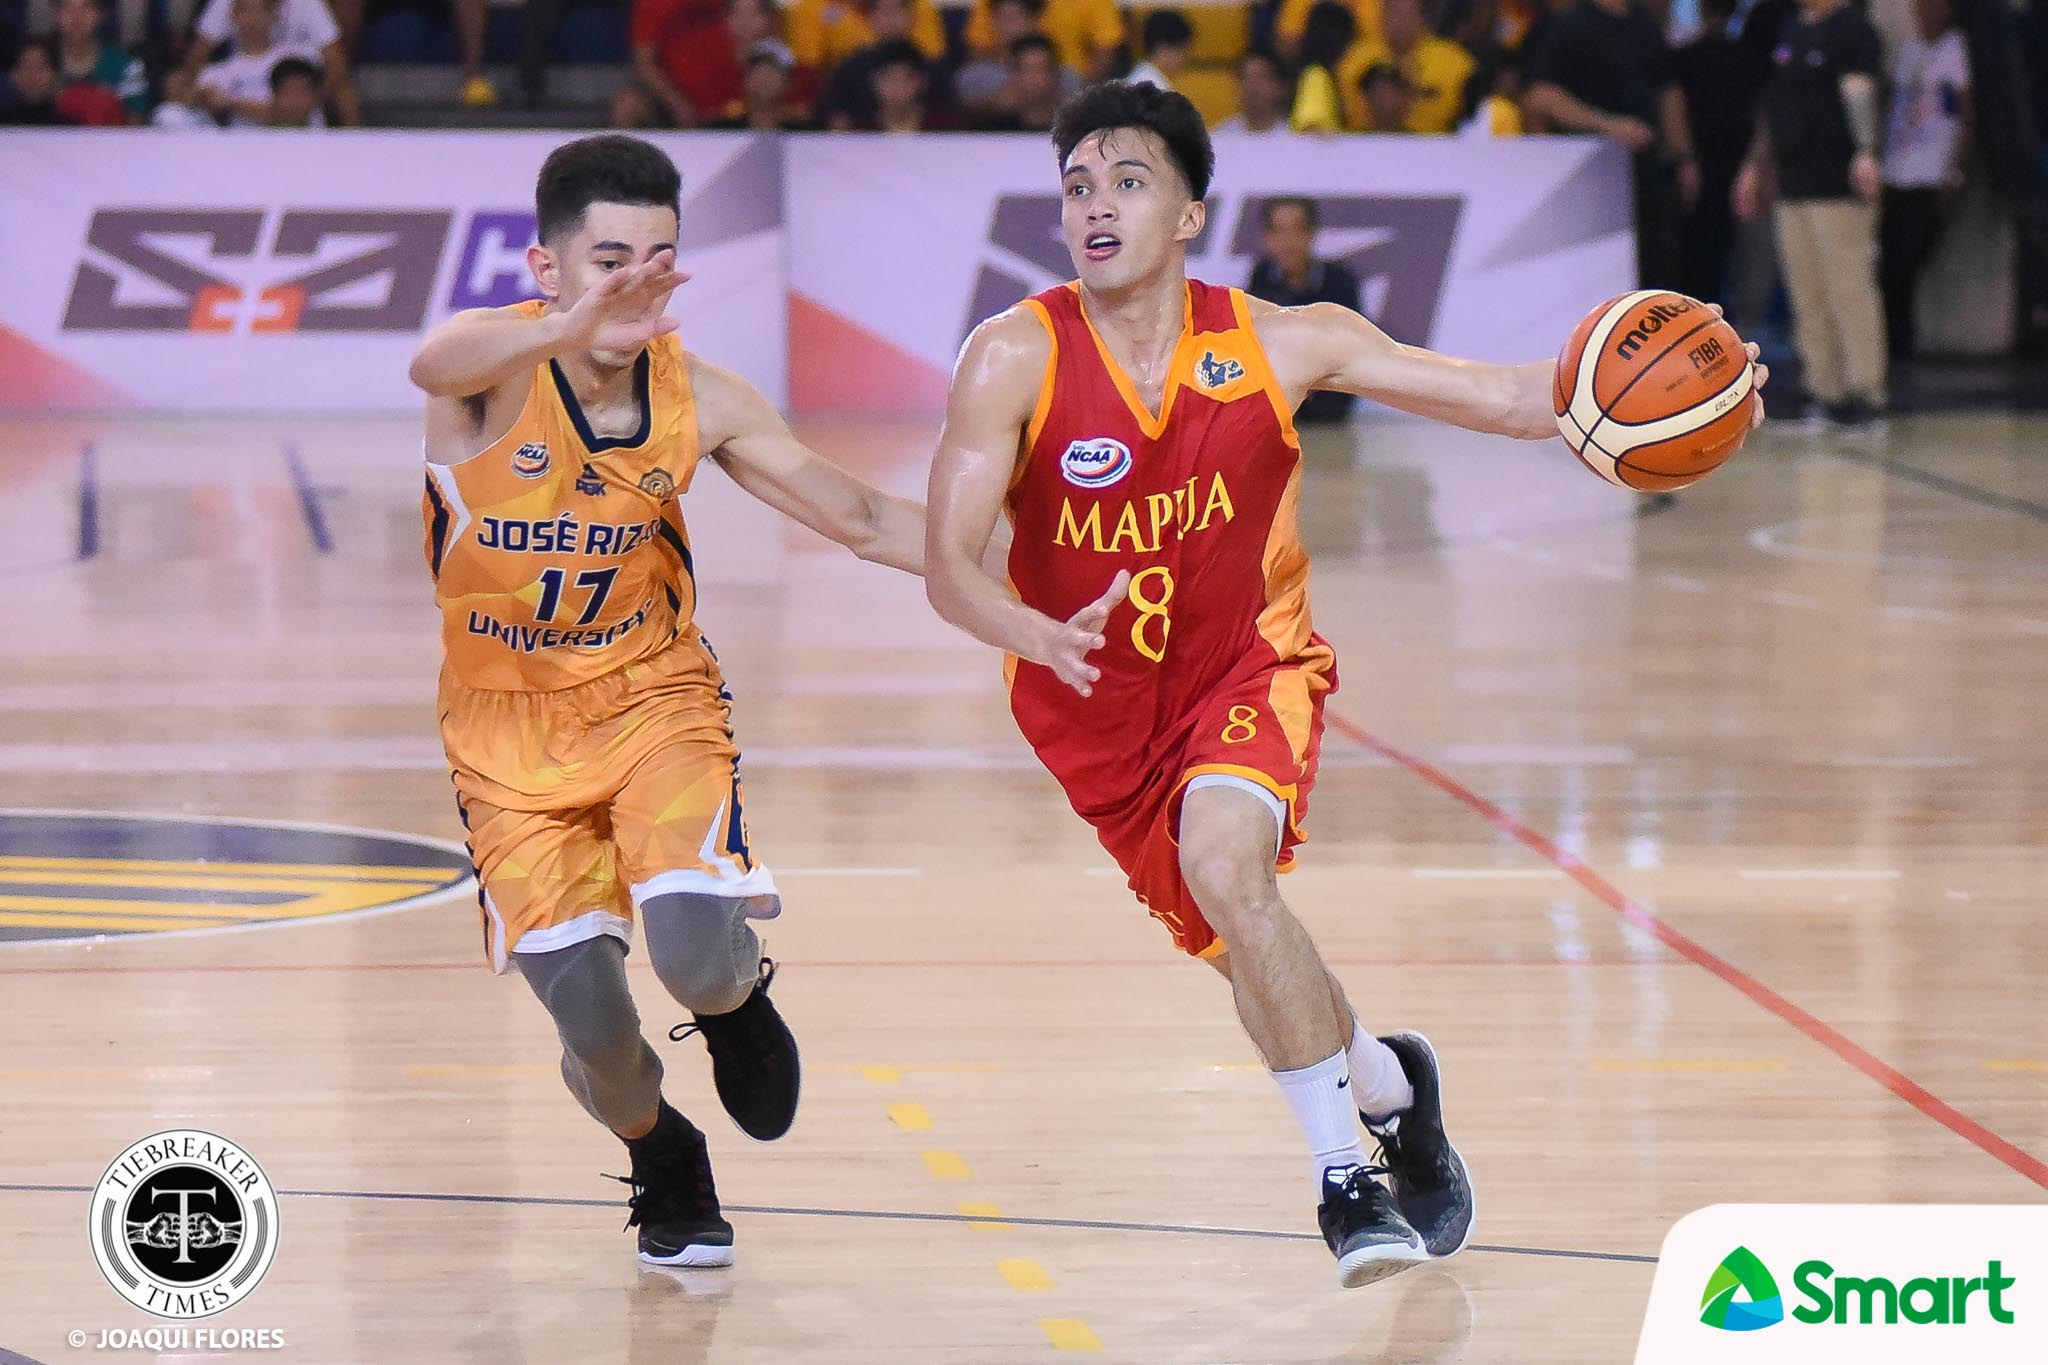 Tiebreaker Times Eric Jabel shines as Mapua conquers JRU for first win Basketball JRU MIT NCAA News  Warren Bonifacio Vergel Meneses RJ David NCAA Season 94 Seniors Basketball NCAA Season 94 Mapua Seniors Basketball Laurenz Victoria JRU Seniors Basketball Jed Mendoza Eric Jabel Atoy Co